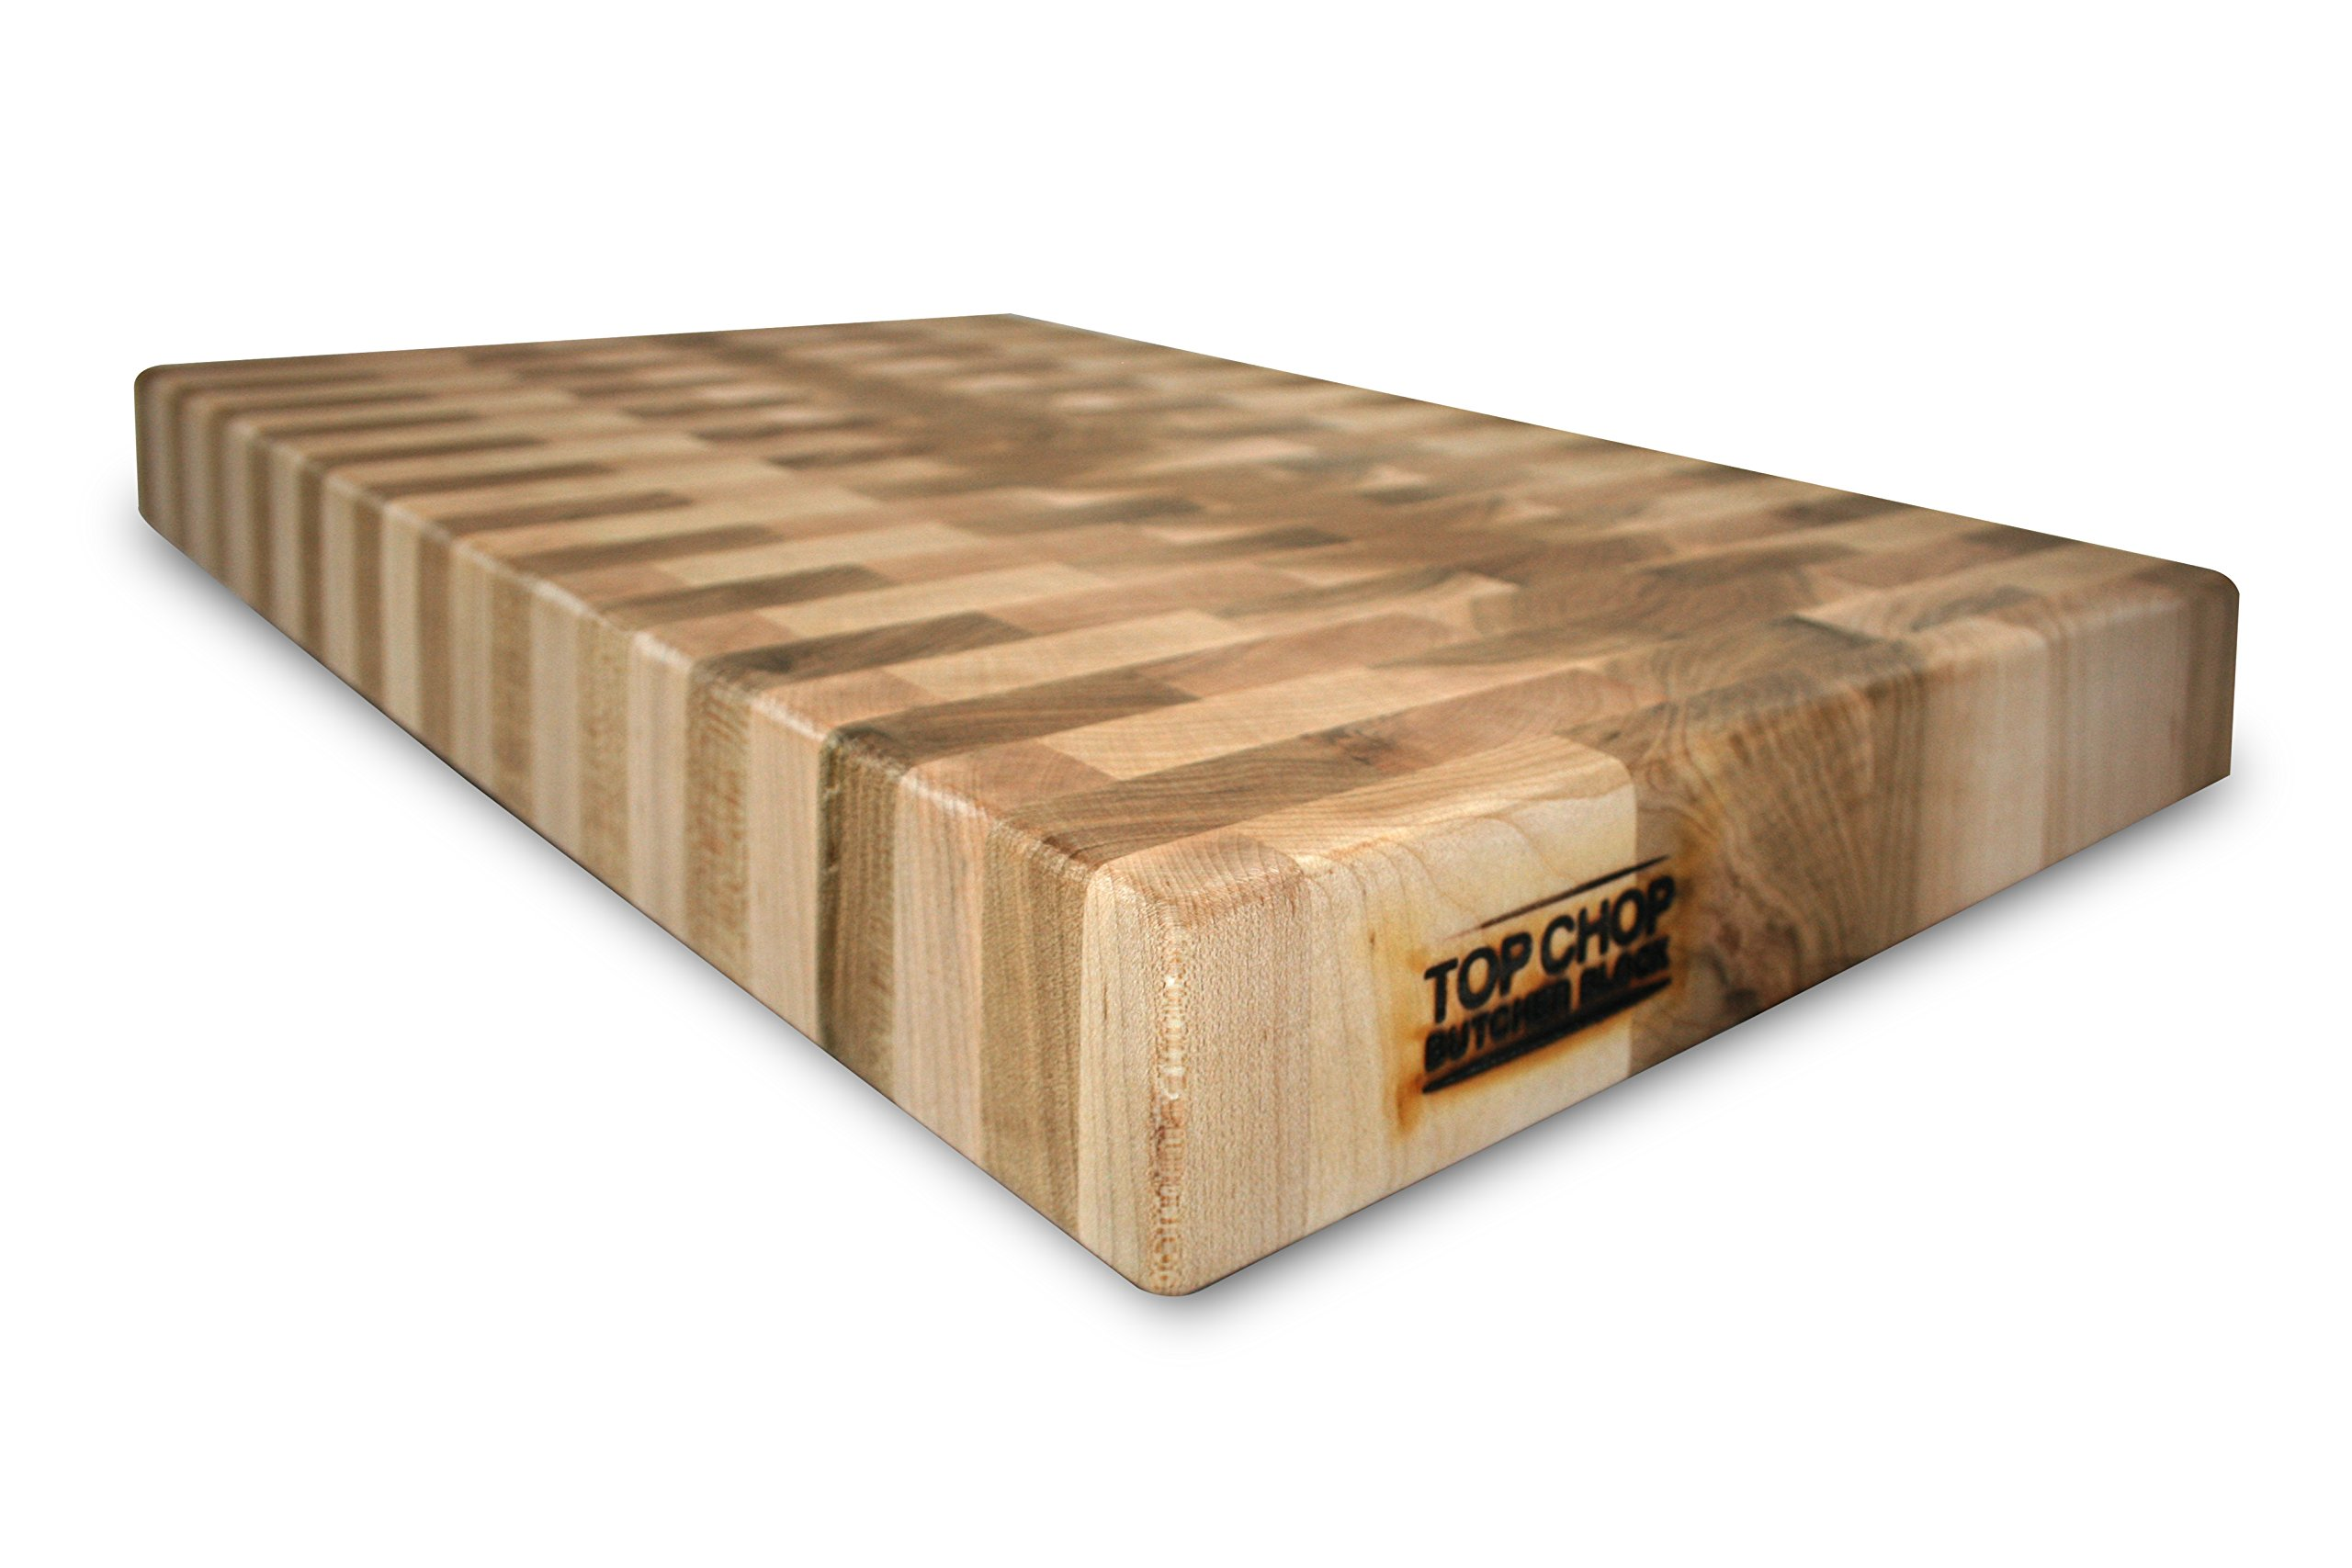 Top Chop Butcher Block PGM-16182 Premium Reversible End Grain Character Grade Cutting Board, Maple by Top Chop Butcher Block